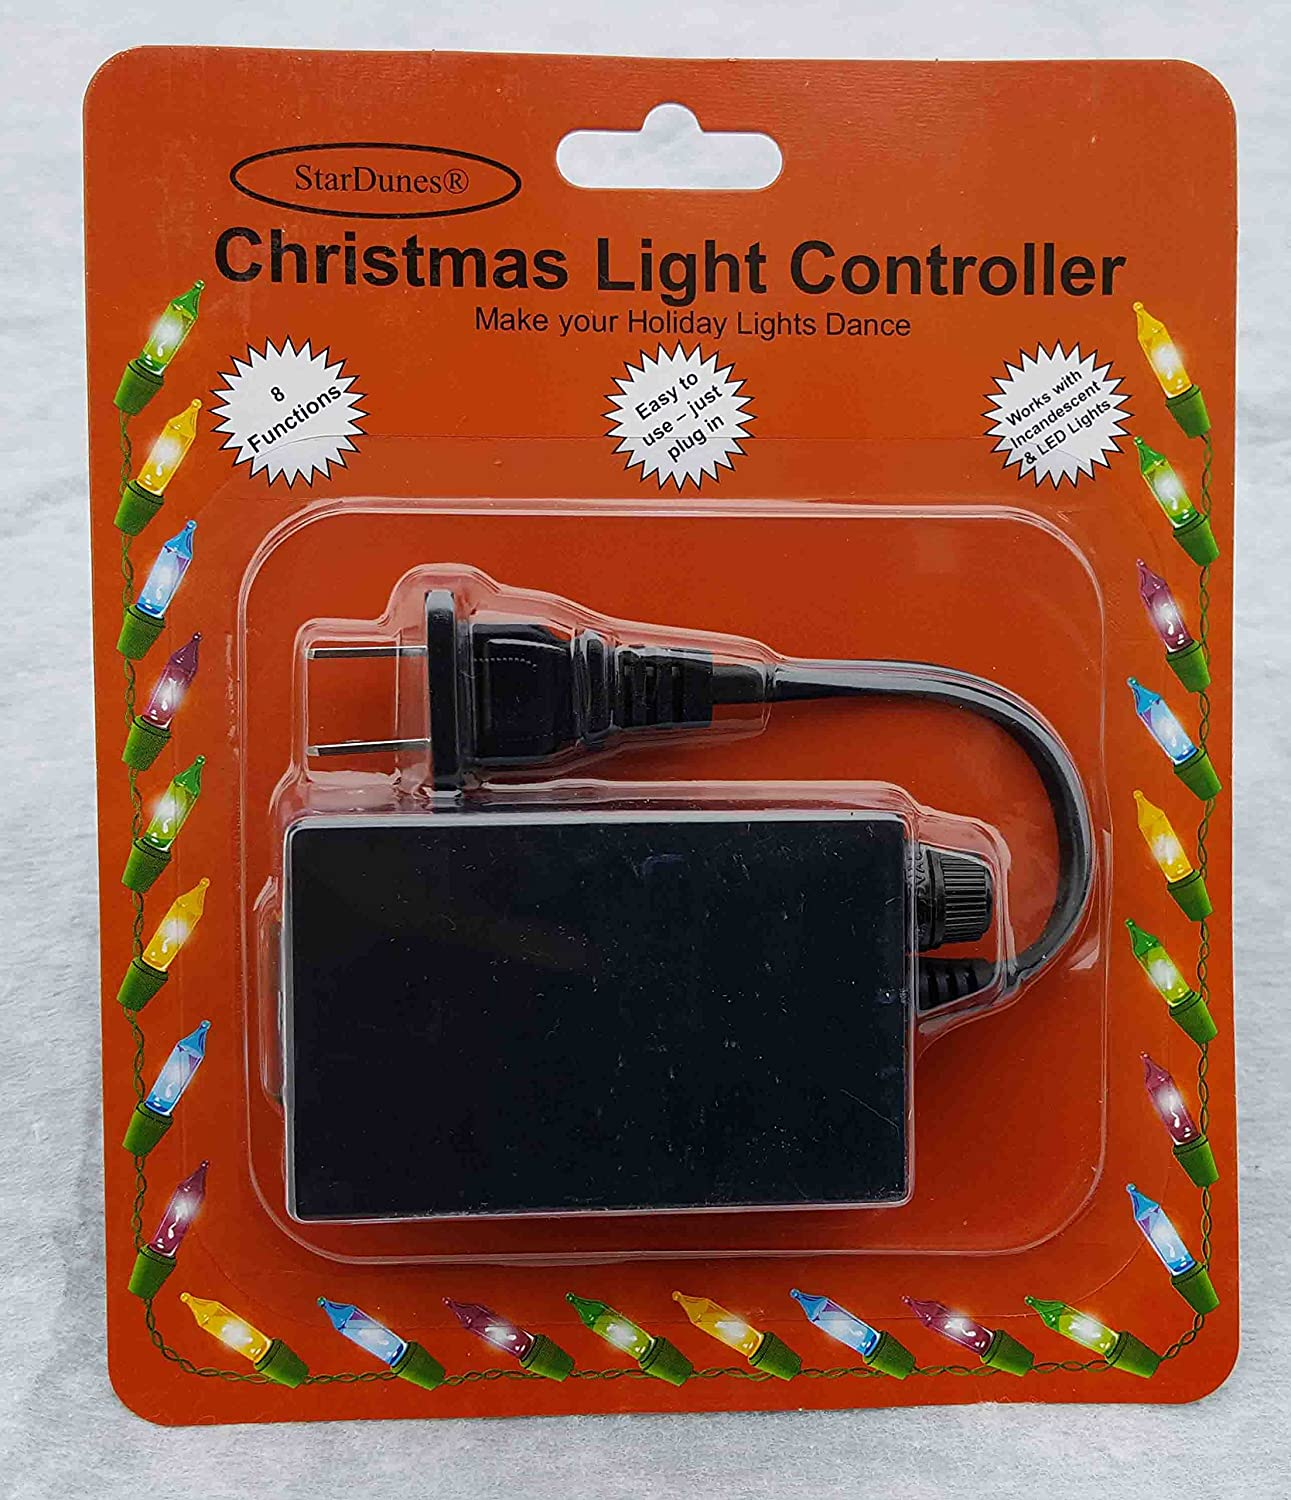 Amazon.com: StarDunes Christmas Light Controller : Home & Kitchen